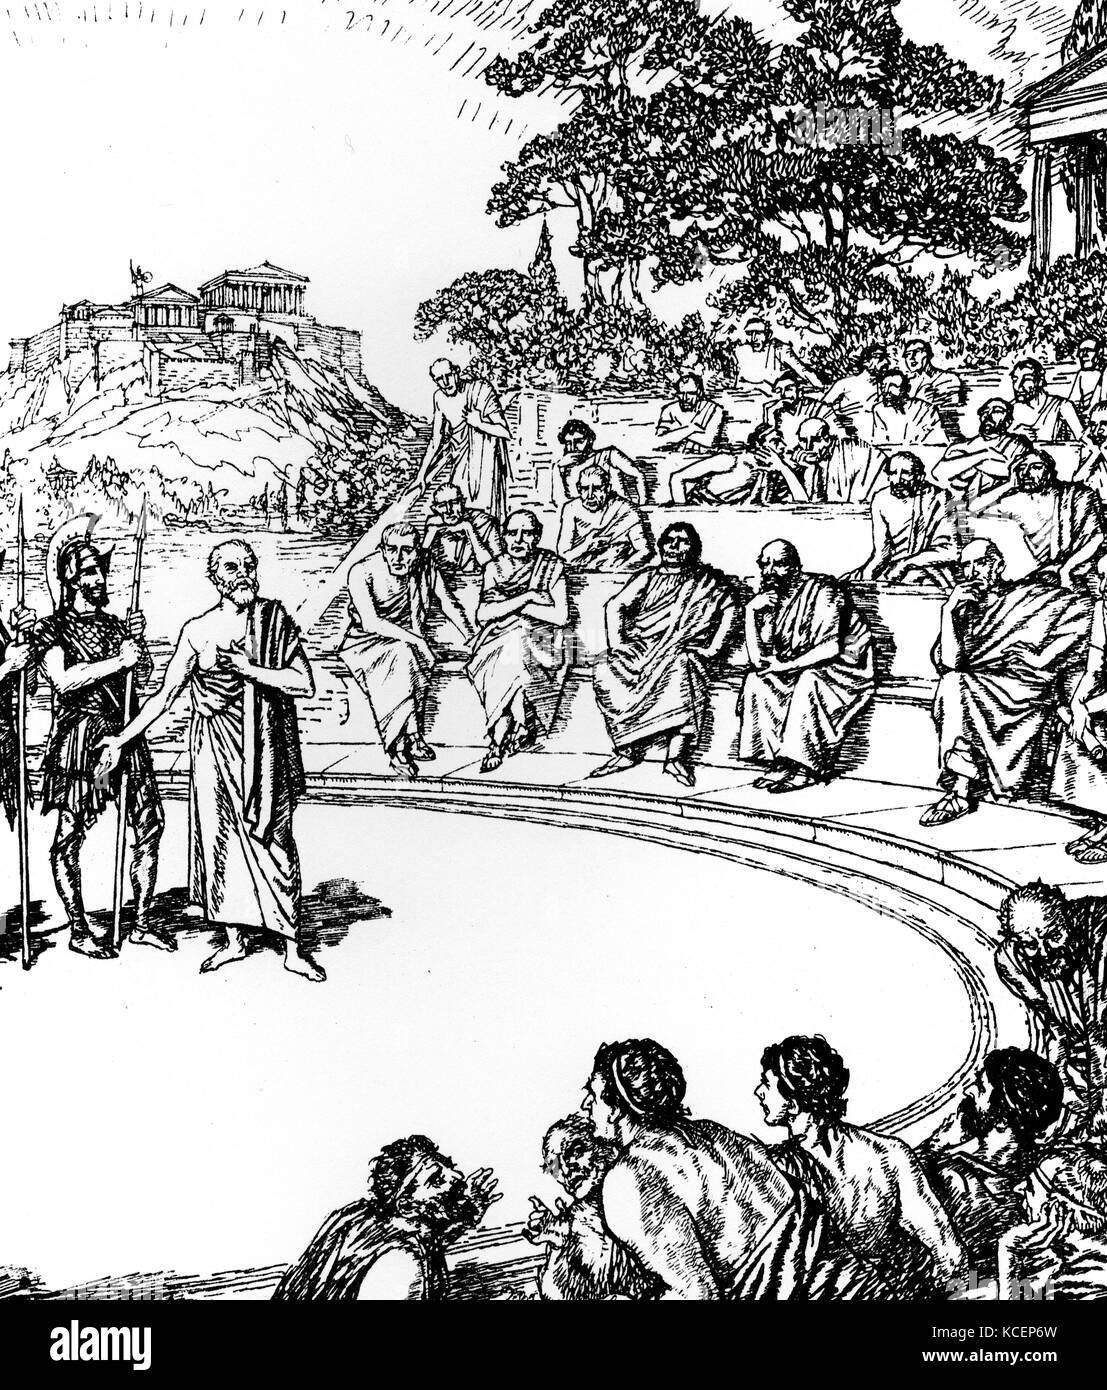 an analysis of the unjust execution of socrates a greek philosopher Corrupting of youth, allowing them to question authority not respecting traditional gods introducing new gods he was ugly so people thought he was evil socrates life: 469bc- 399bc born: 469 bc birthplace: athens, greece died: 399 bc (execution by poison) best known as: the great greek philosopher who drank hemlock socrates is the.